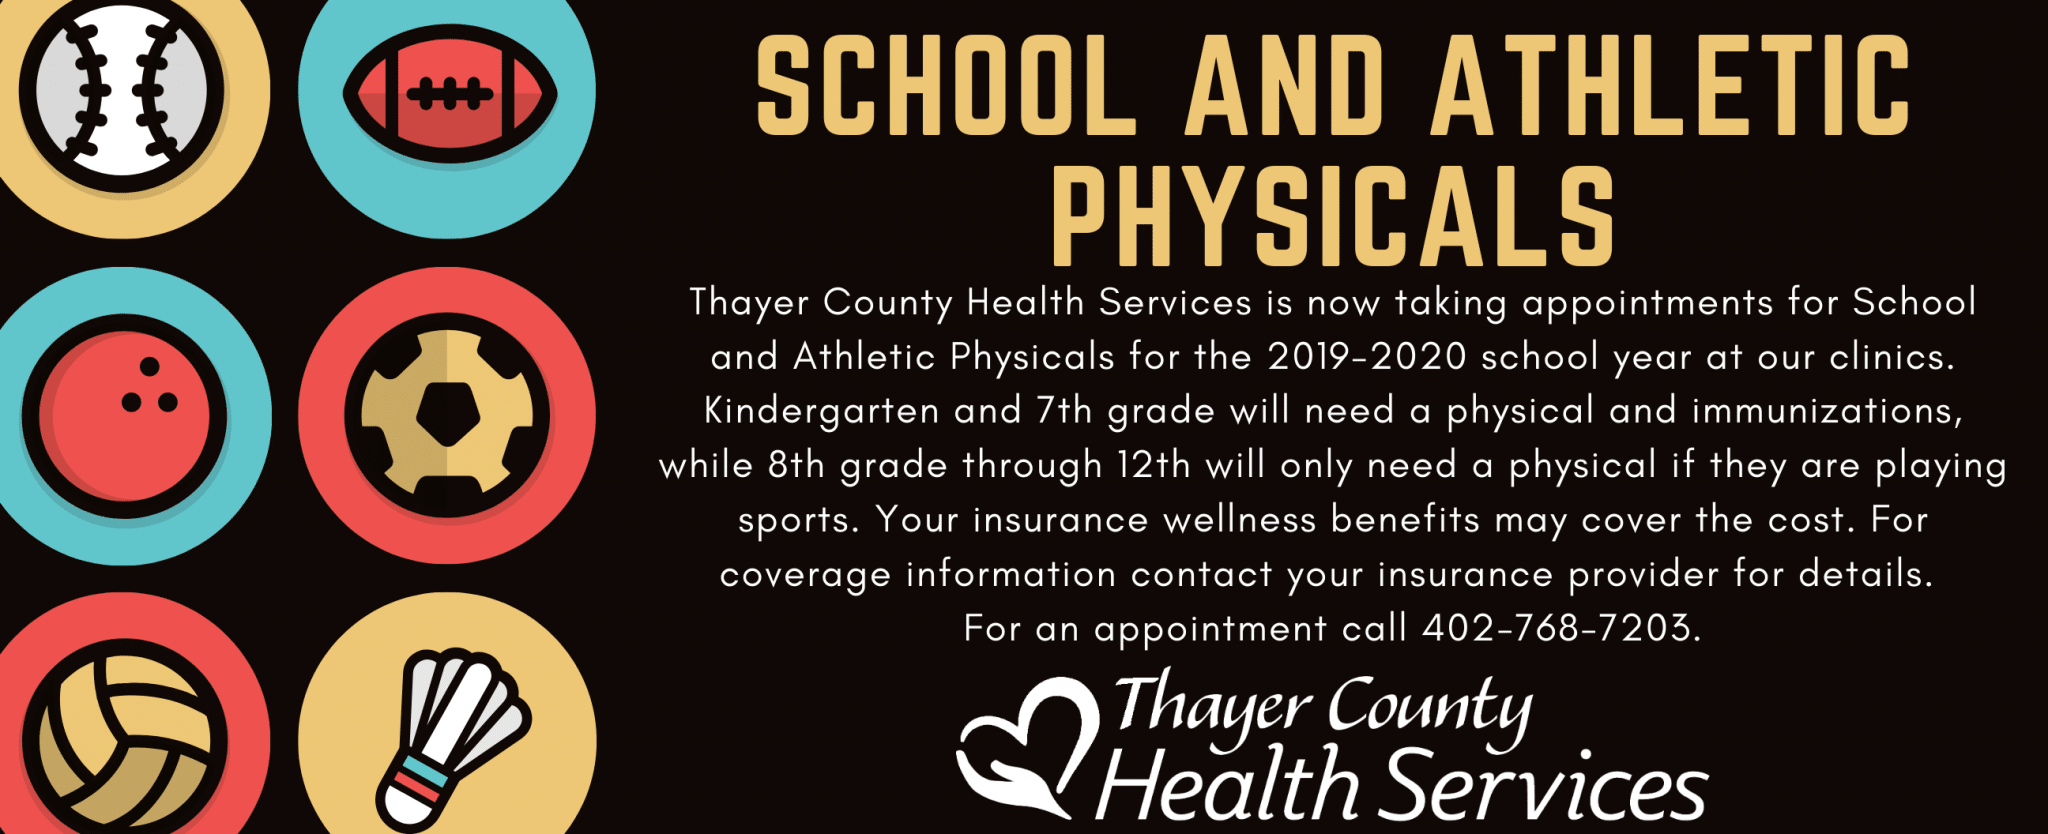 School and Athletic Physicals